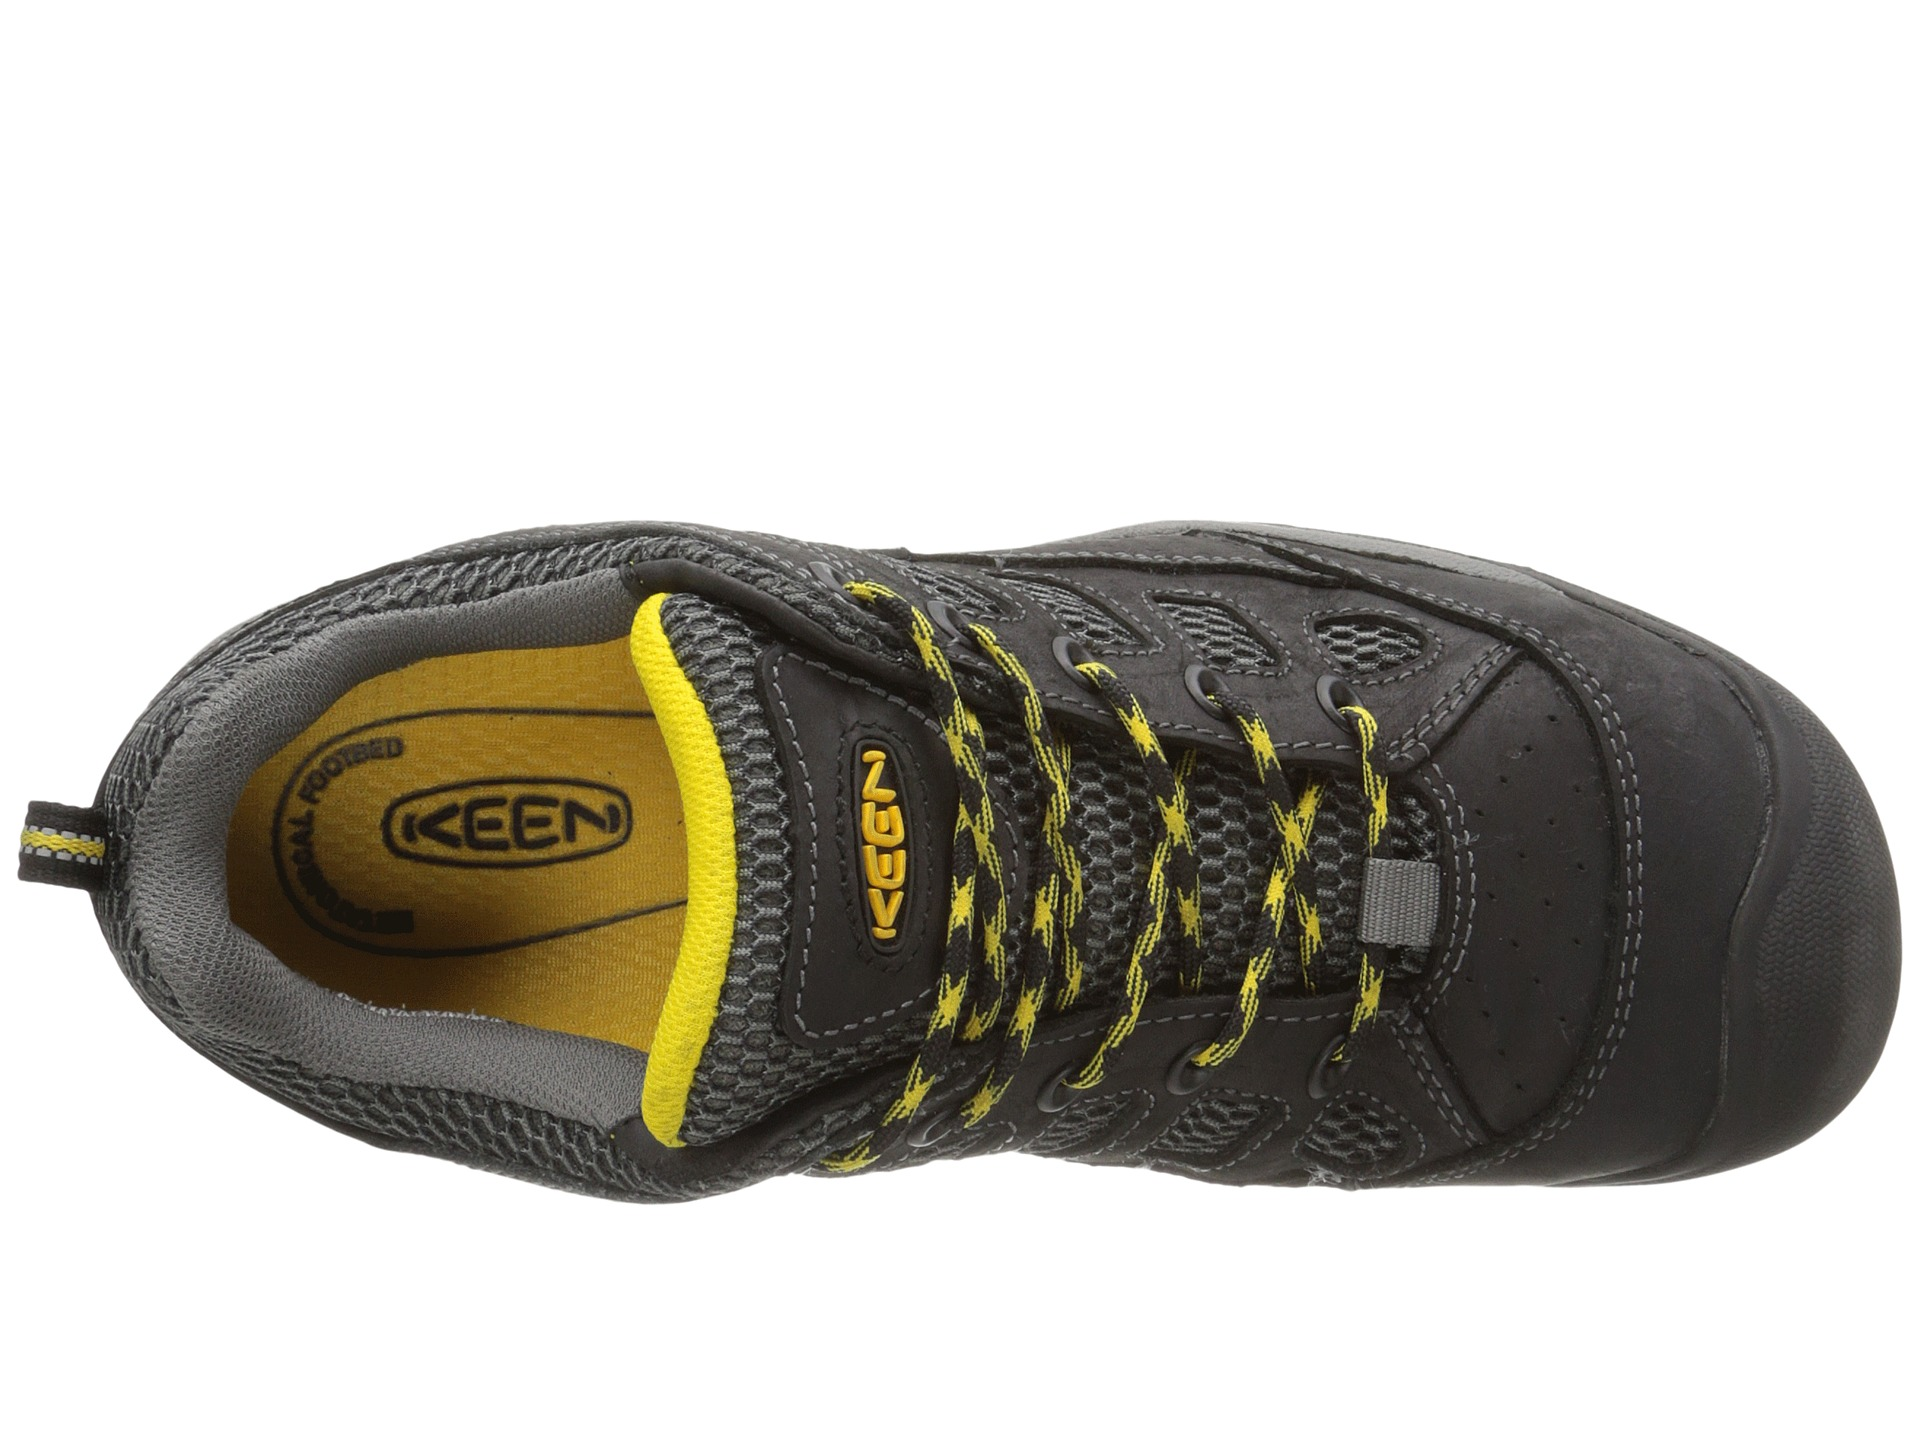 Keen Utility Tucson Low Steel Toe - Zappos.com Free Shipping BOTH Ways